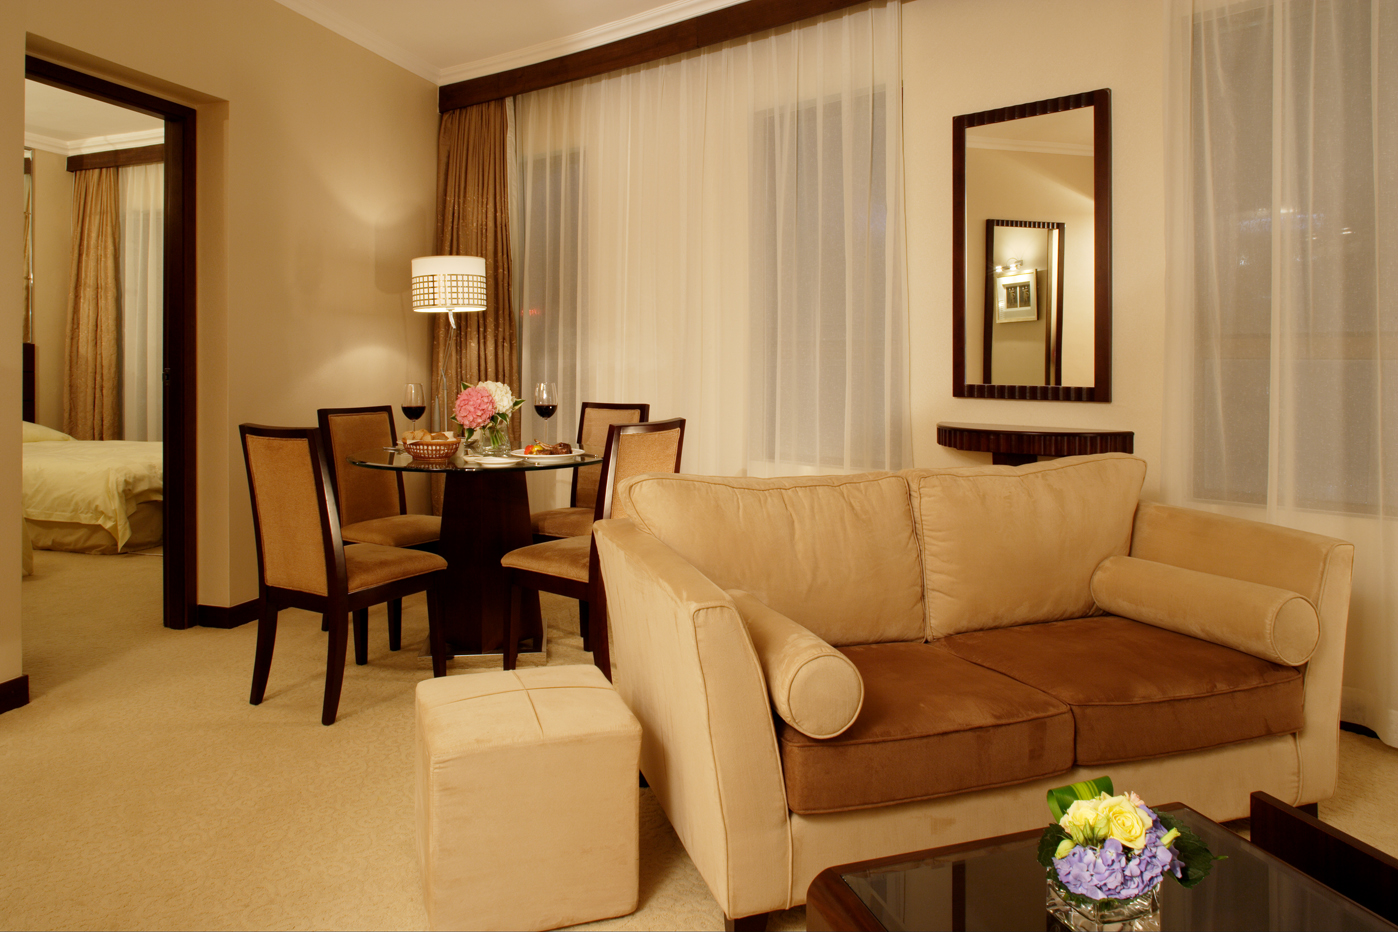 Cosmopolitan Hotel Hong Kong is conveniently located between downtown Causeway Bay and Wan Chai, yet enjoying the tranquility and the panoramic view of the city skyline and the Happy Valley race cours